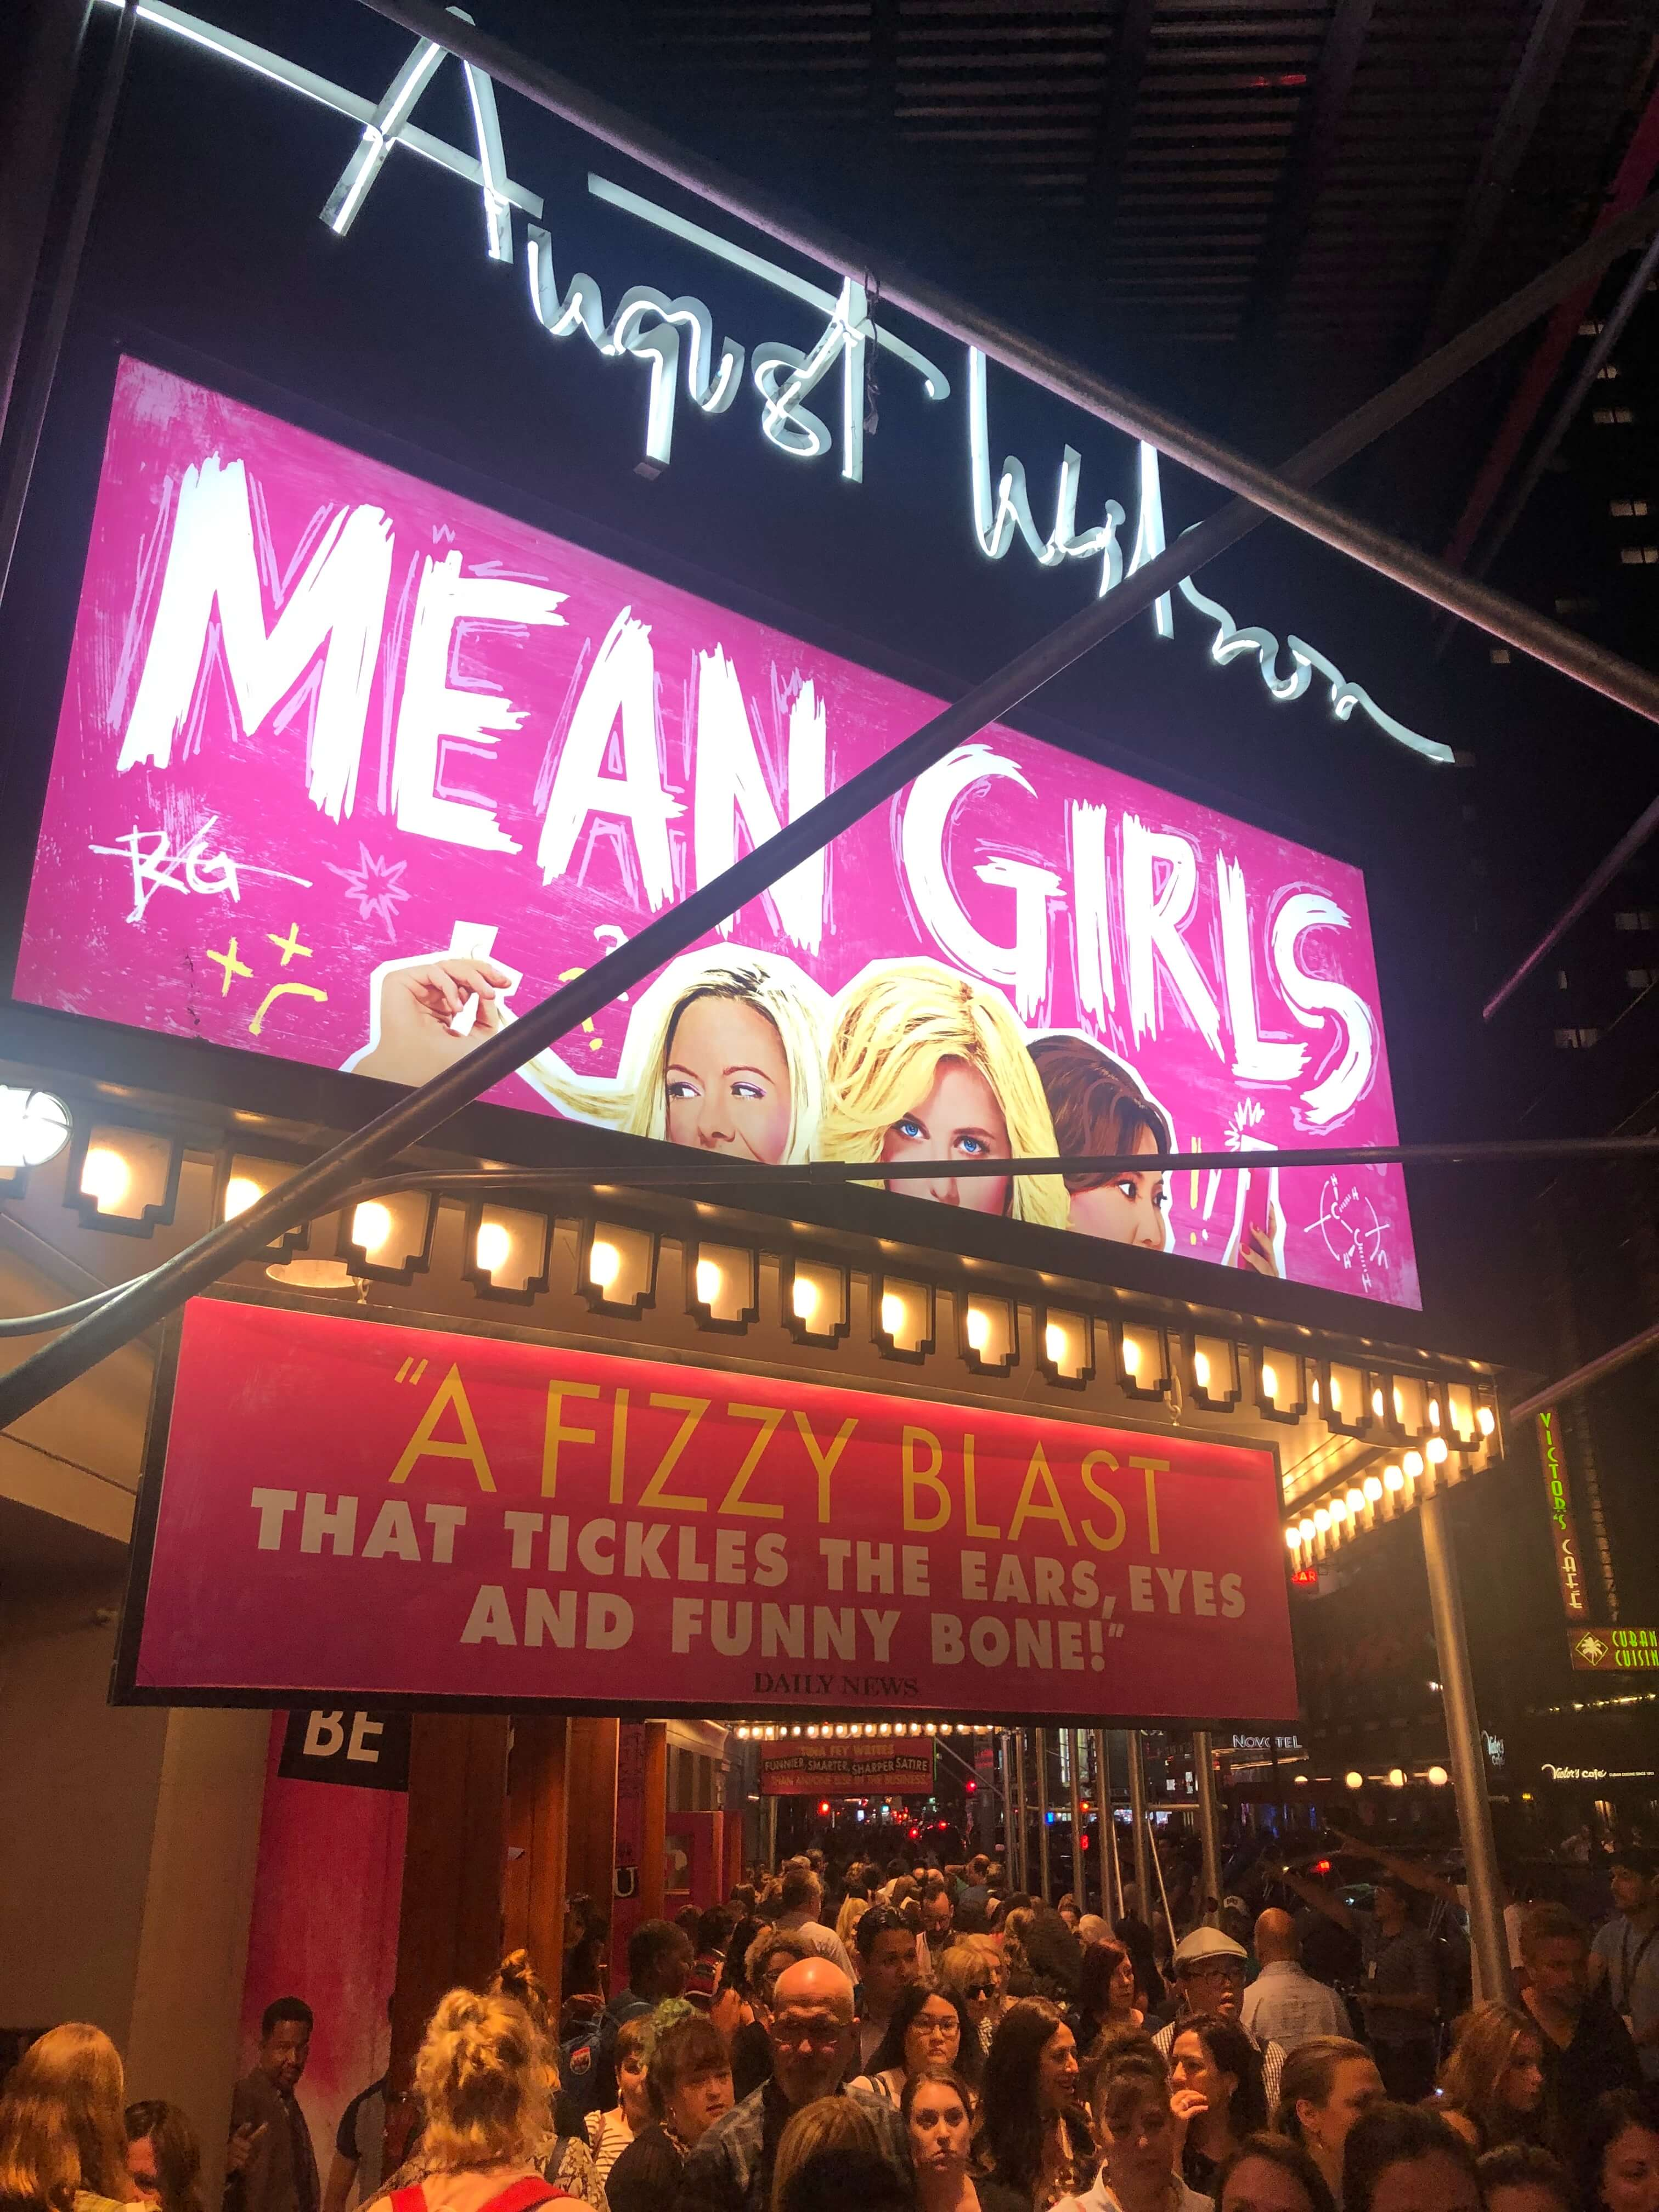 So Fetch: Fun Night Out to See Mean Girls on Broadway